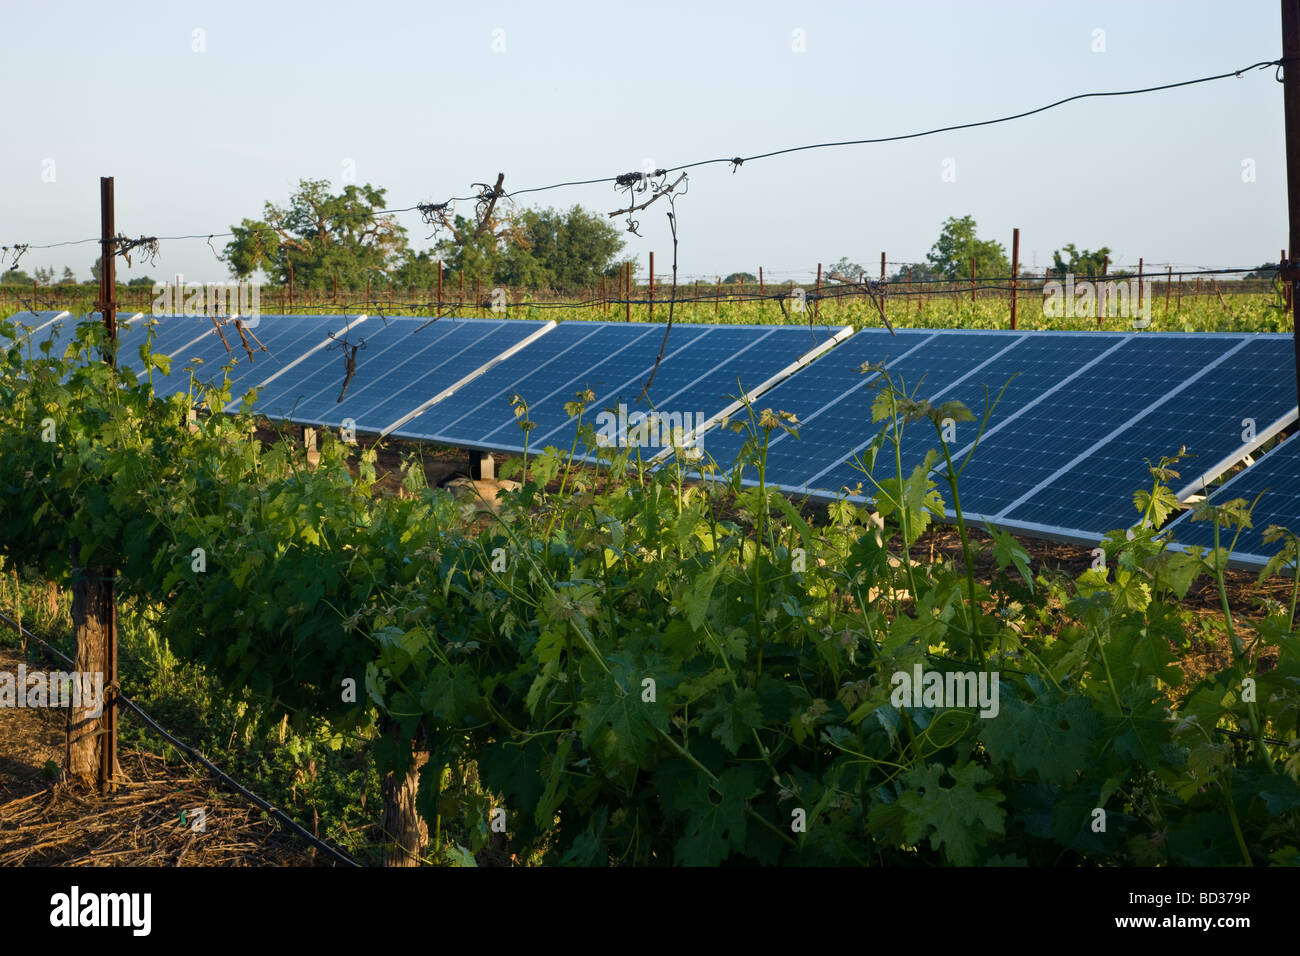 Solar Panels operating in vineyard. - Stock Image